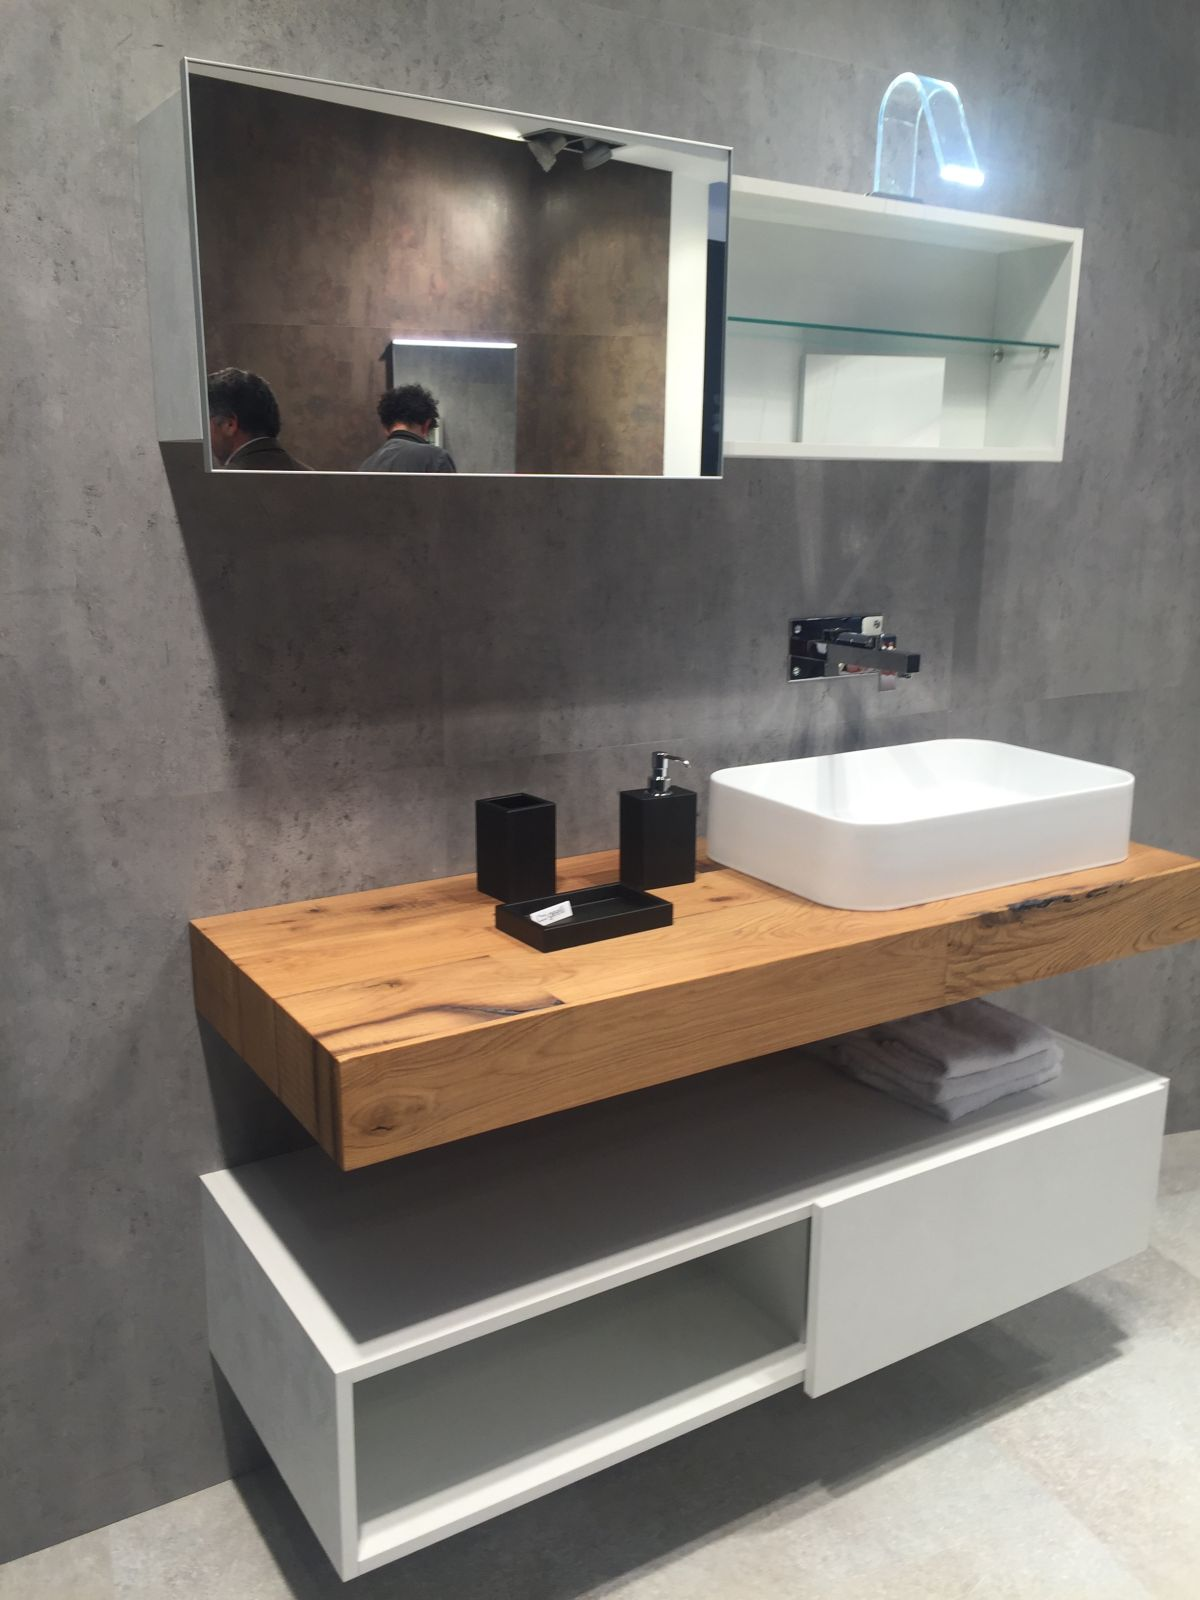 Solid Wood Floating Countertop For Bathroom Stylish Ways To Decorate With Modern Bathroom Vanities